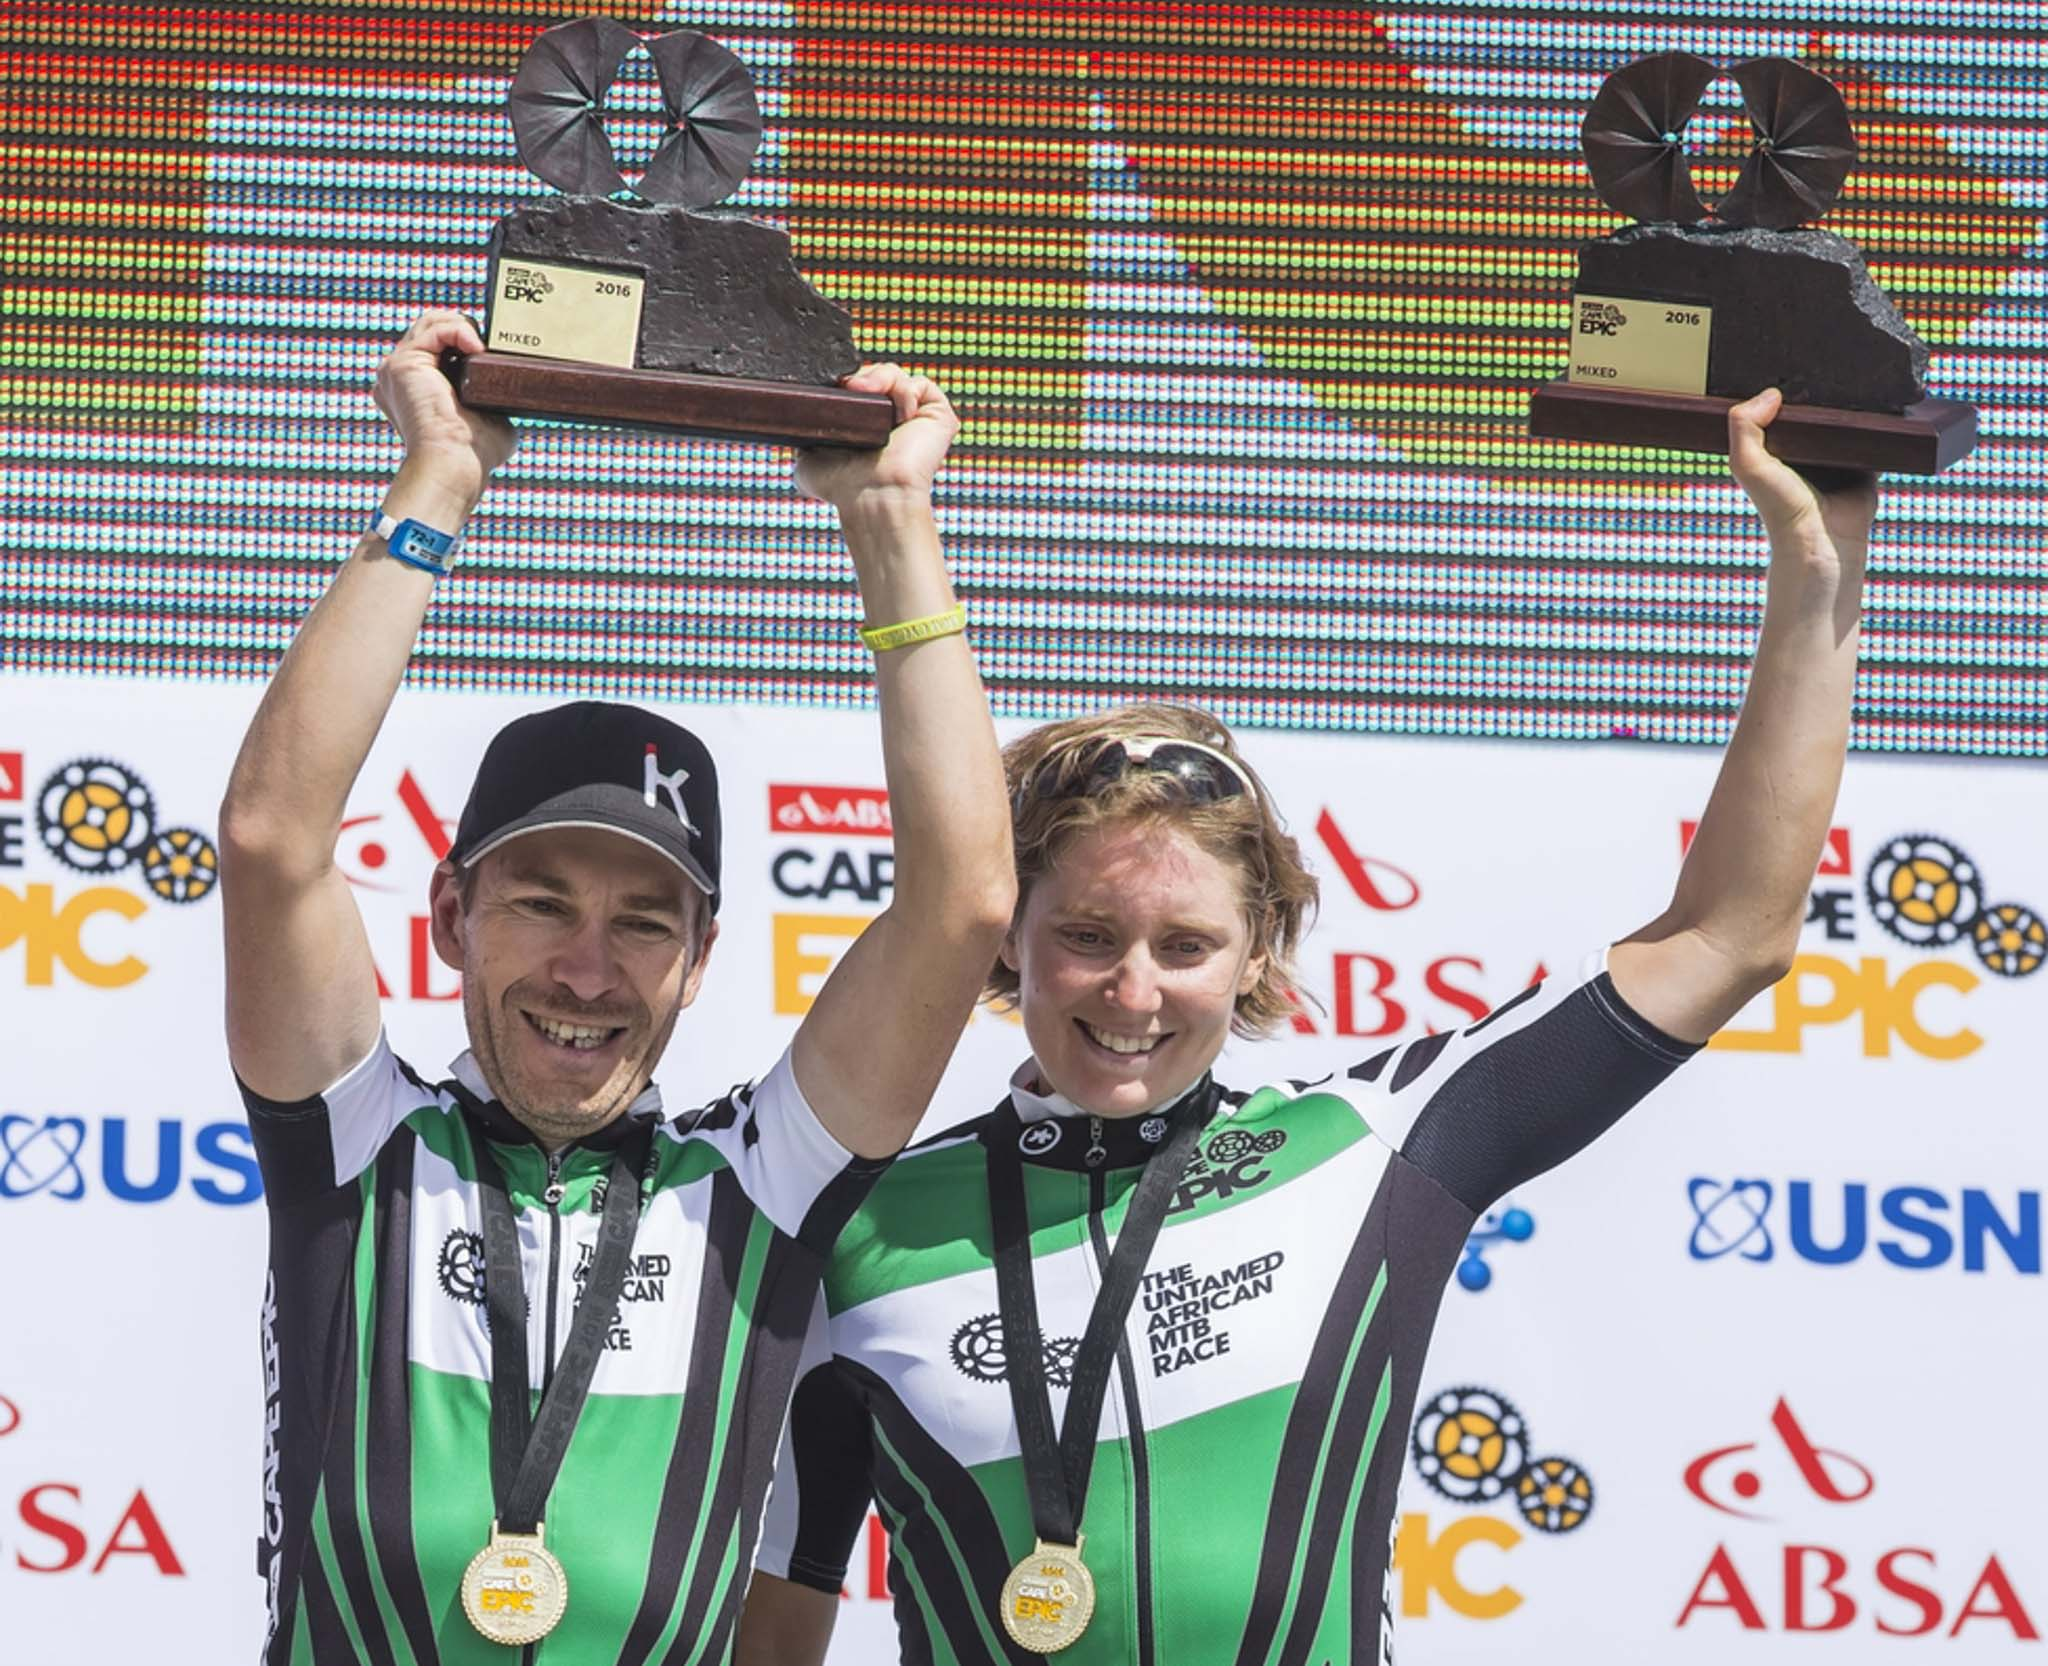 Mixed green jersey winners Jean-Francois Bossler and Fanny Bourdon during the final stage (stage 7) of the 2016 Absa Cape Epic Mountain Bike stage race from Boschendal in Stellenbosch to Meerendal Wine Estate in Durbanville, South Africa on the 20th March 2016 Photo by Dominic Barnardt/Cape Epic/SPORTZPICS PLEASE ENSURE THE APPROPRIATE CREDIT IS GIVEN TO THE PHOTOGRAPHER AND SPORTZPICS ALONG WITH THE ABSA CAPE EPIC ace2016